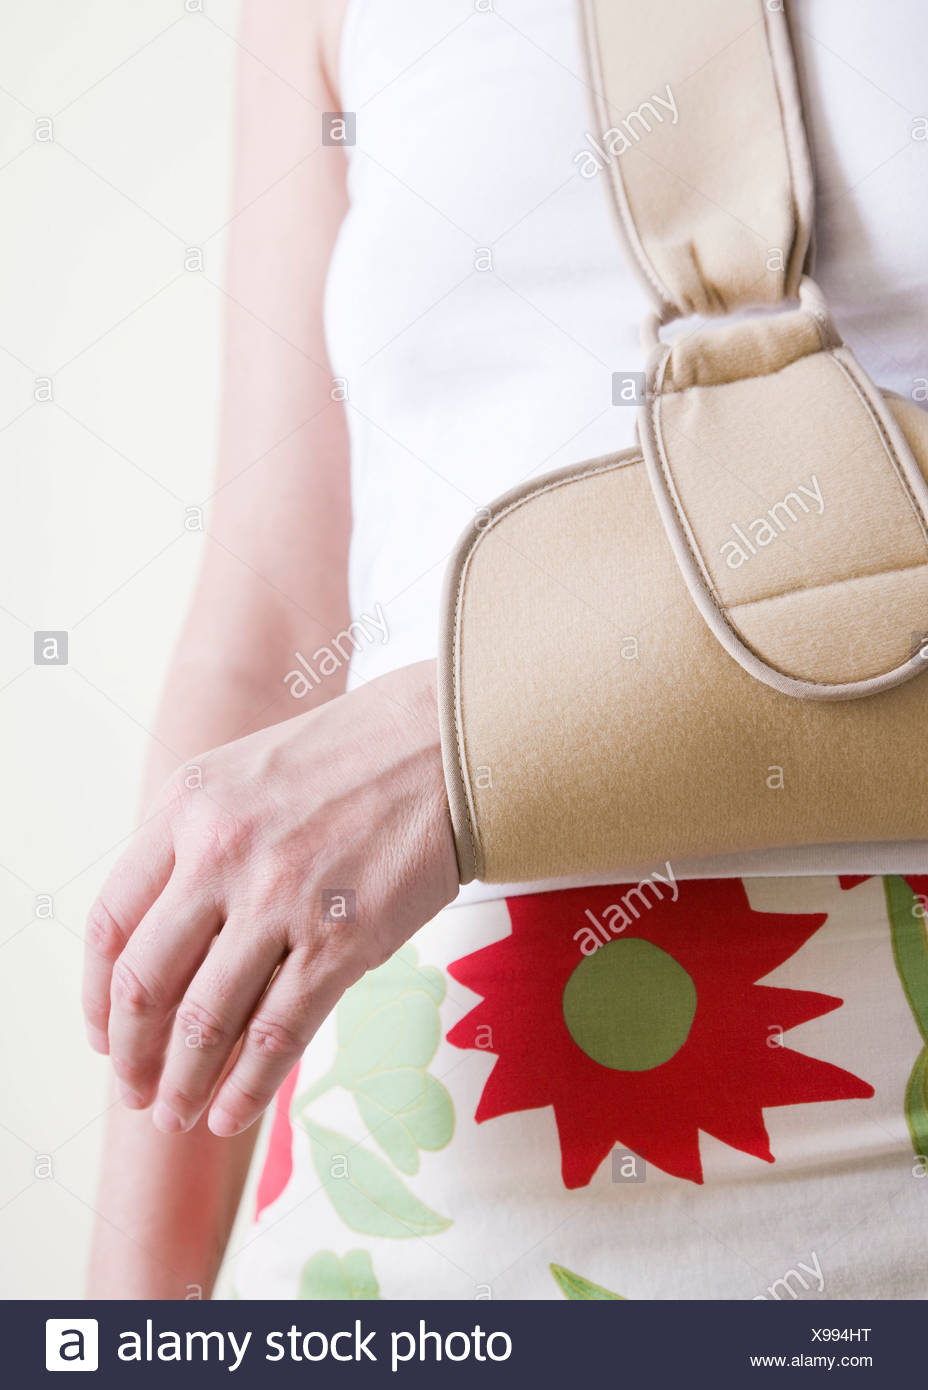 Arm in a sling - Stock Image